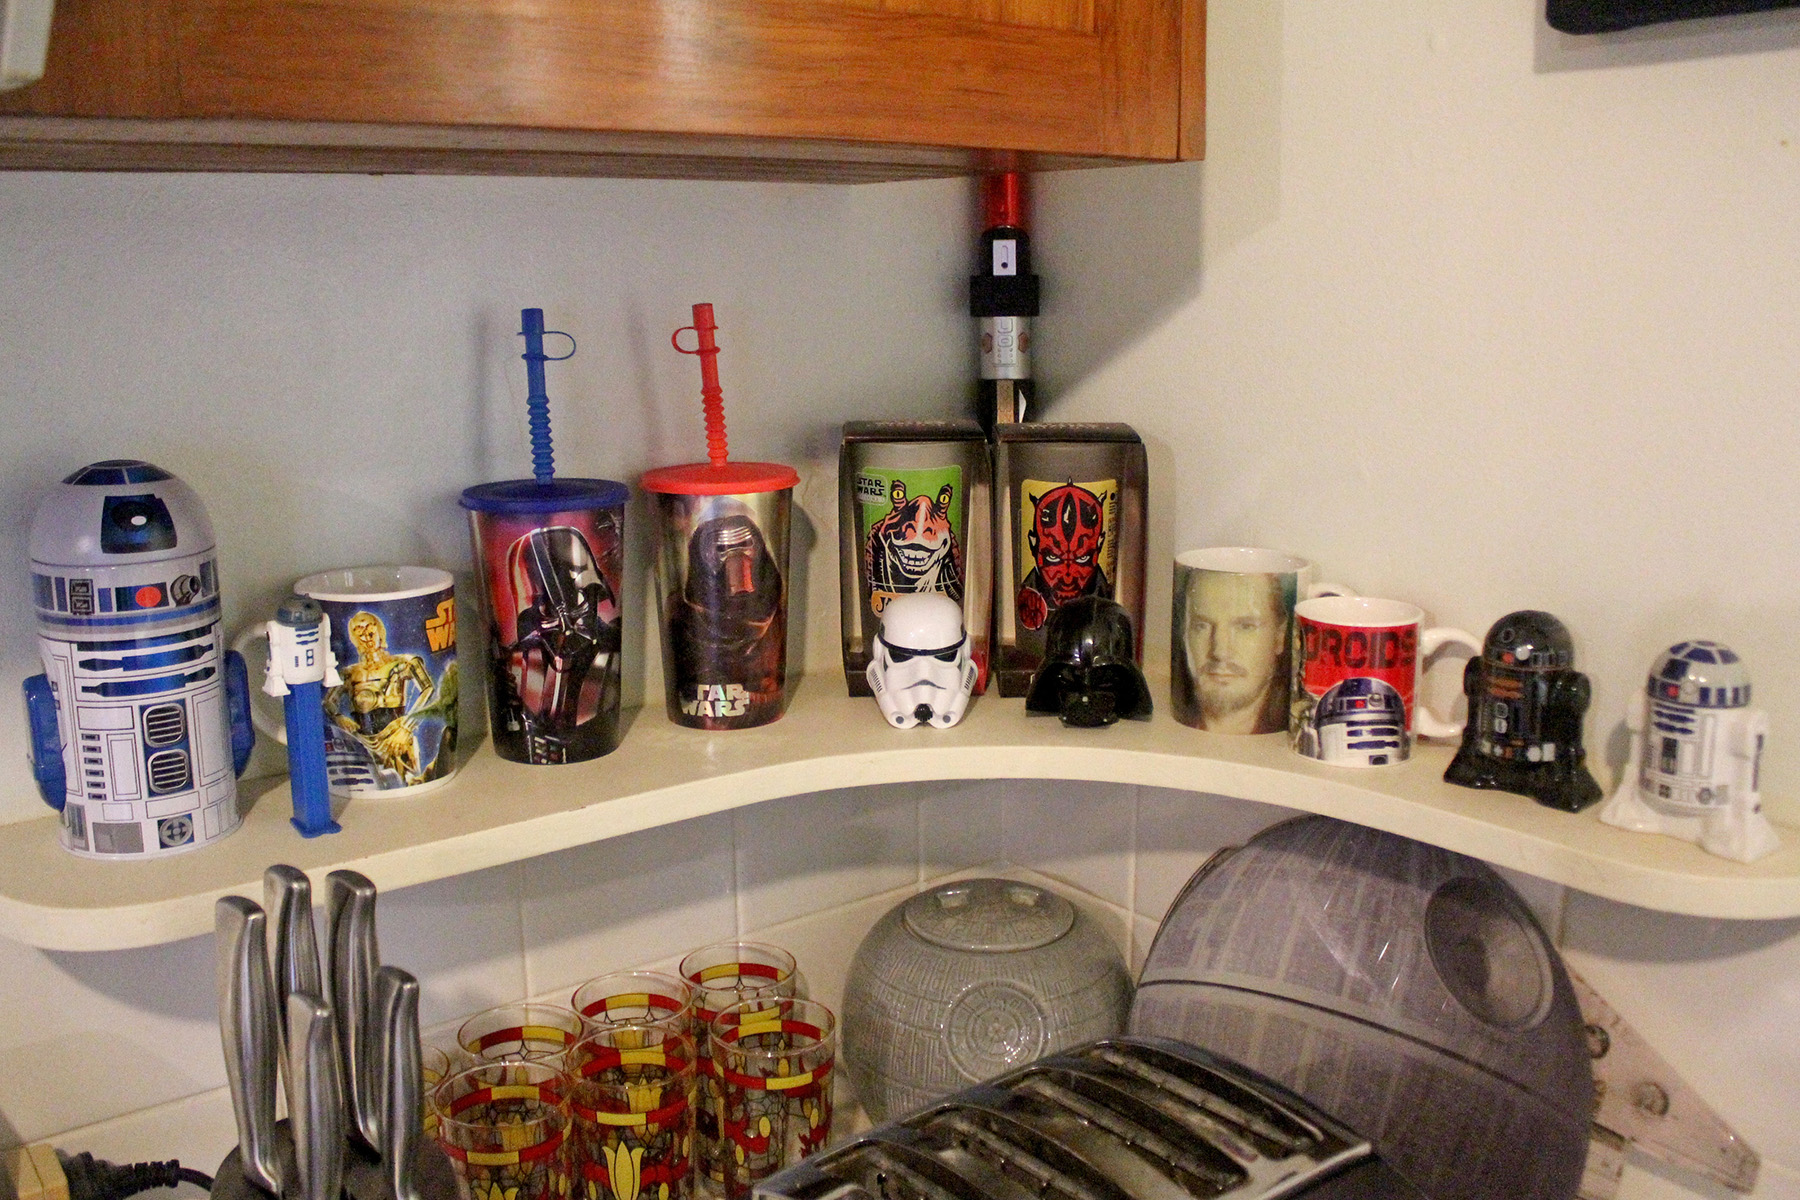 Star Wars cups, mugs, salt & pepper shakers